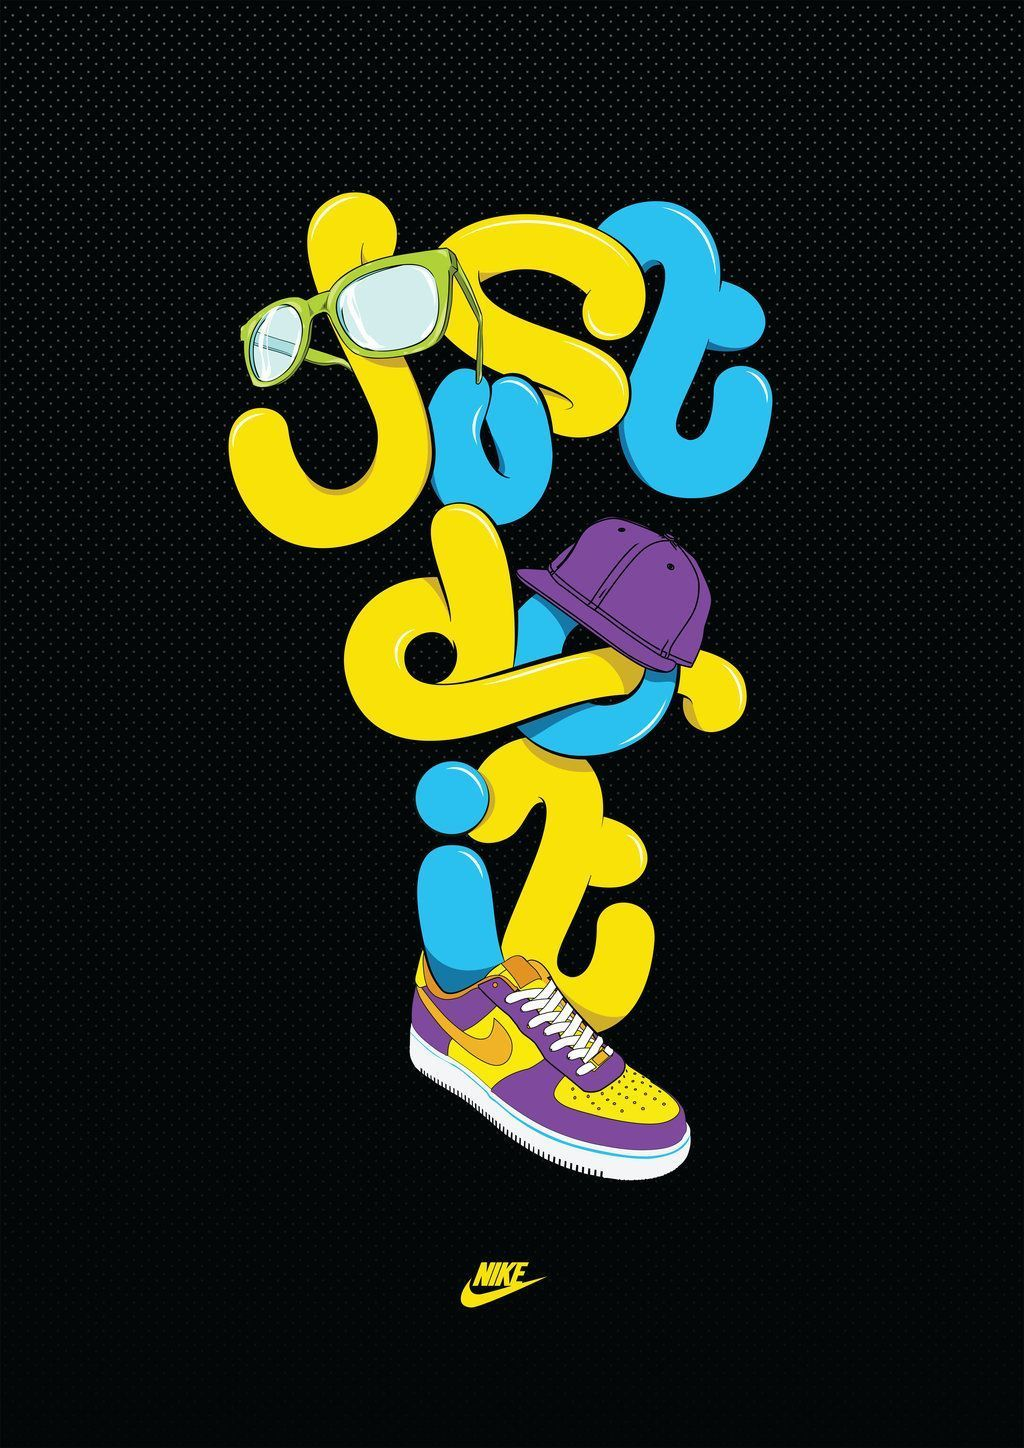 Just Do It Wallpapers, Live Wallpapers, Iphone Wallpapers, Desktop, Nike Poster,